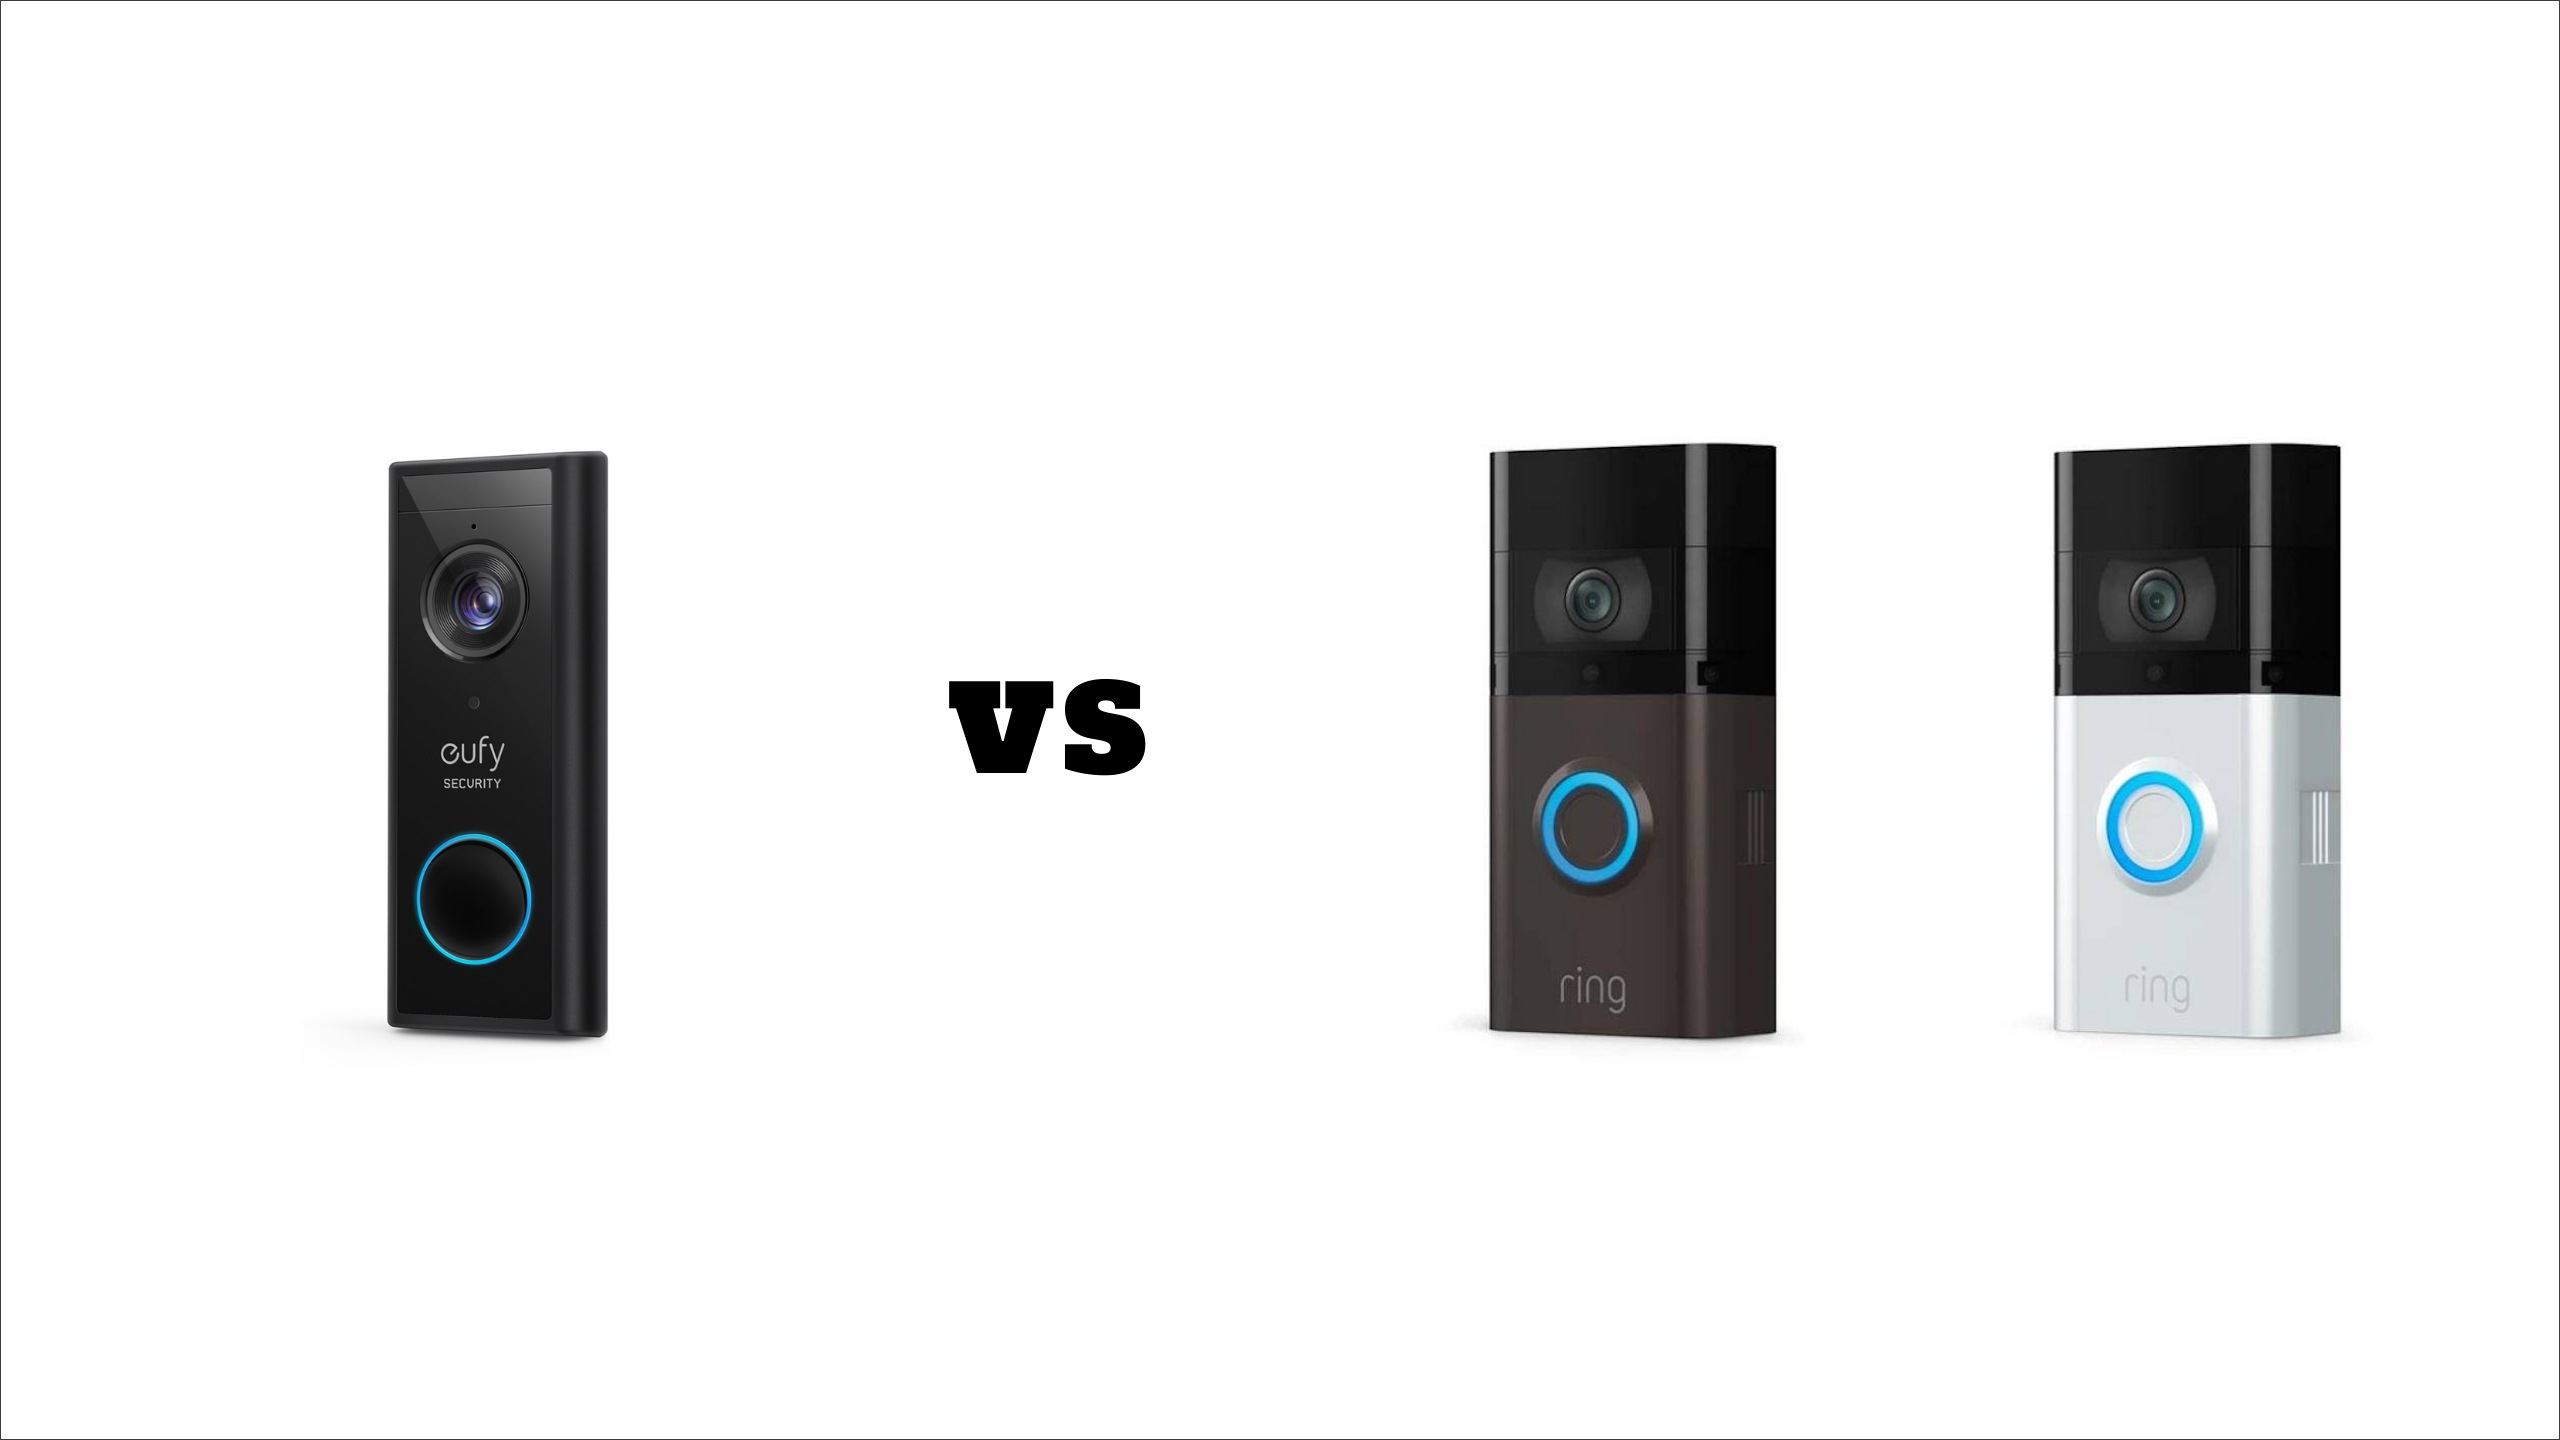 eufy video doorbell 2k vs ring video doorbell 3